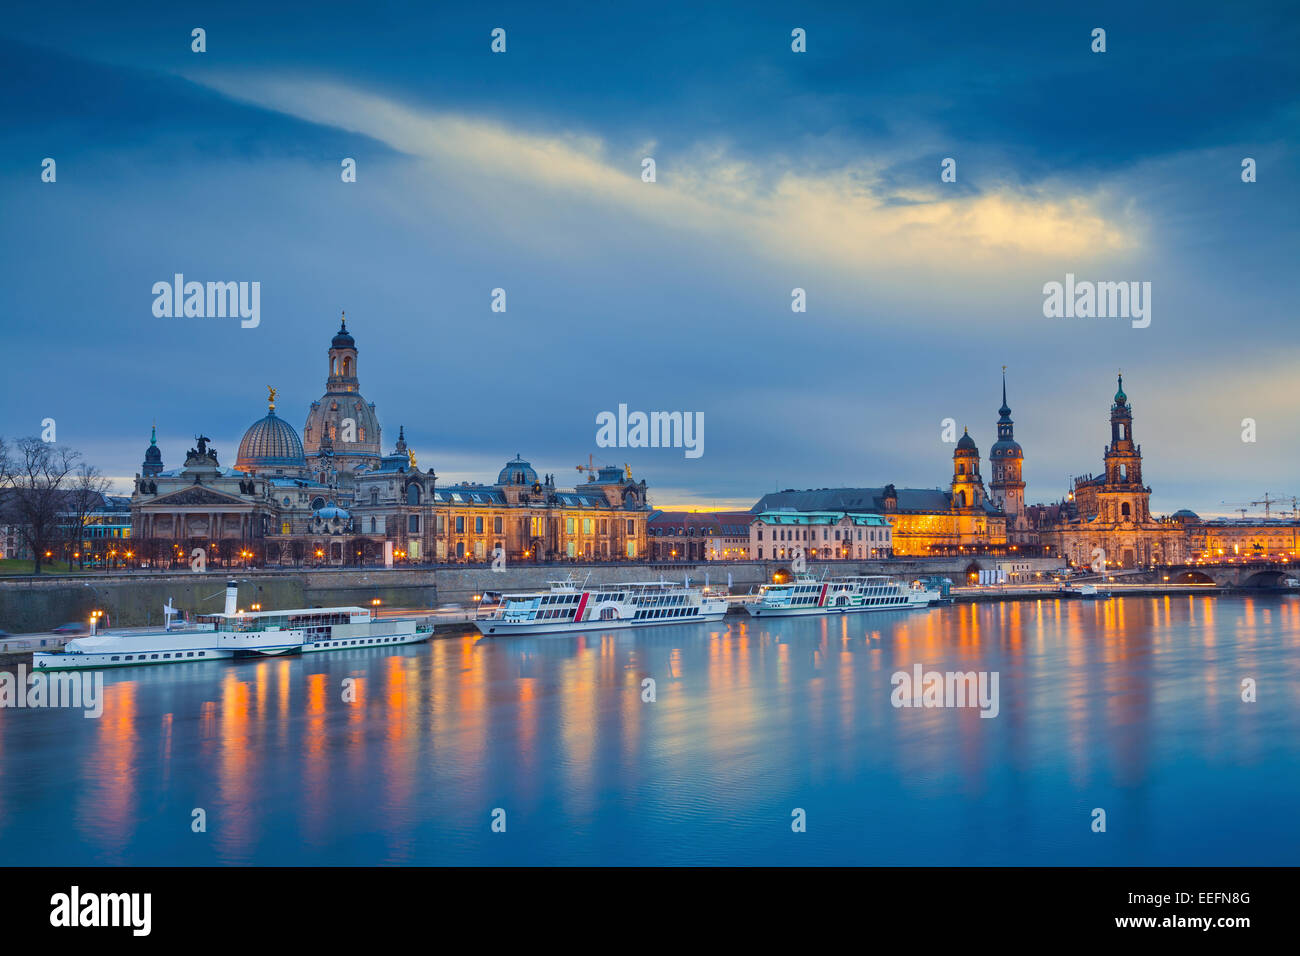 Dresden. Image of Dresden, Germany during twilight blue hour with Elbe River in the foreground. - Stock Image